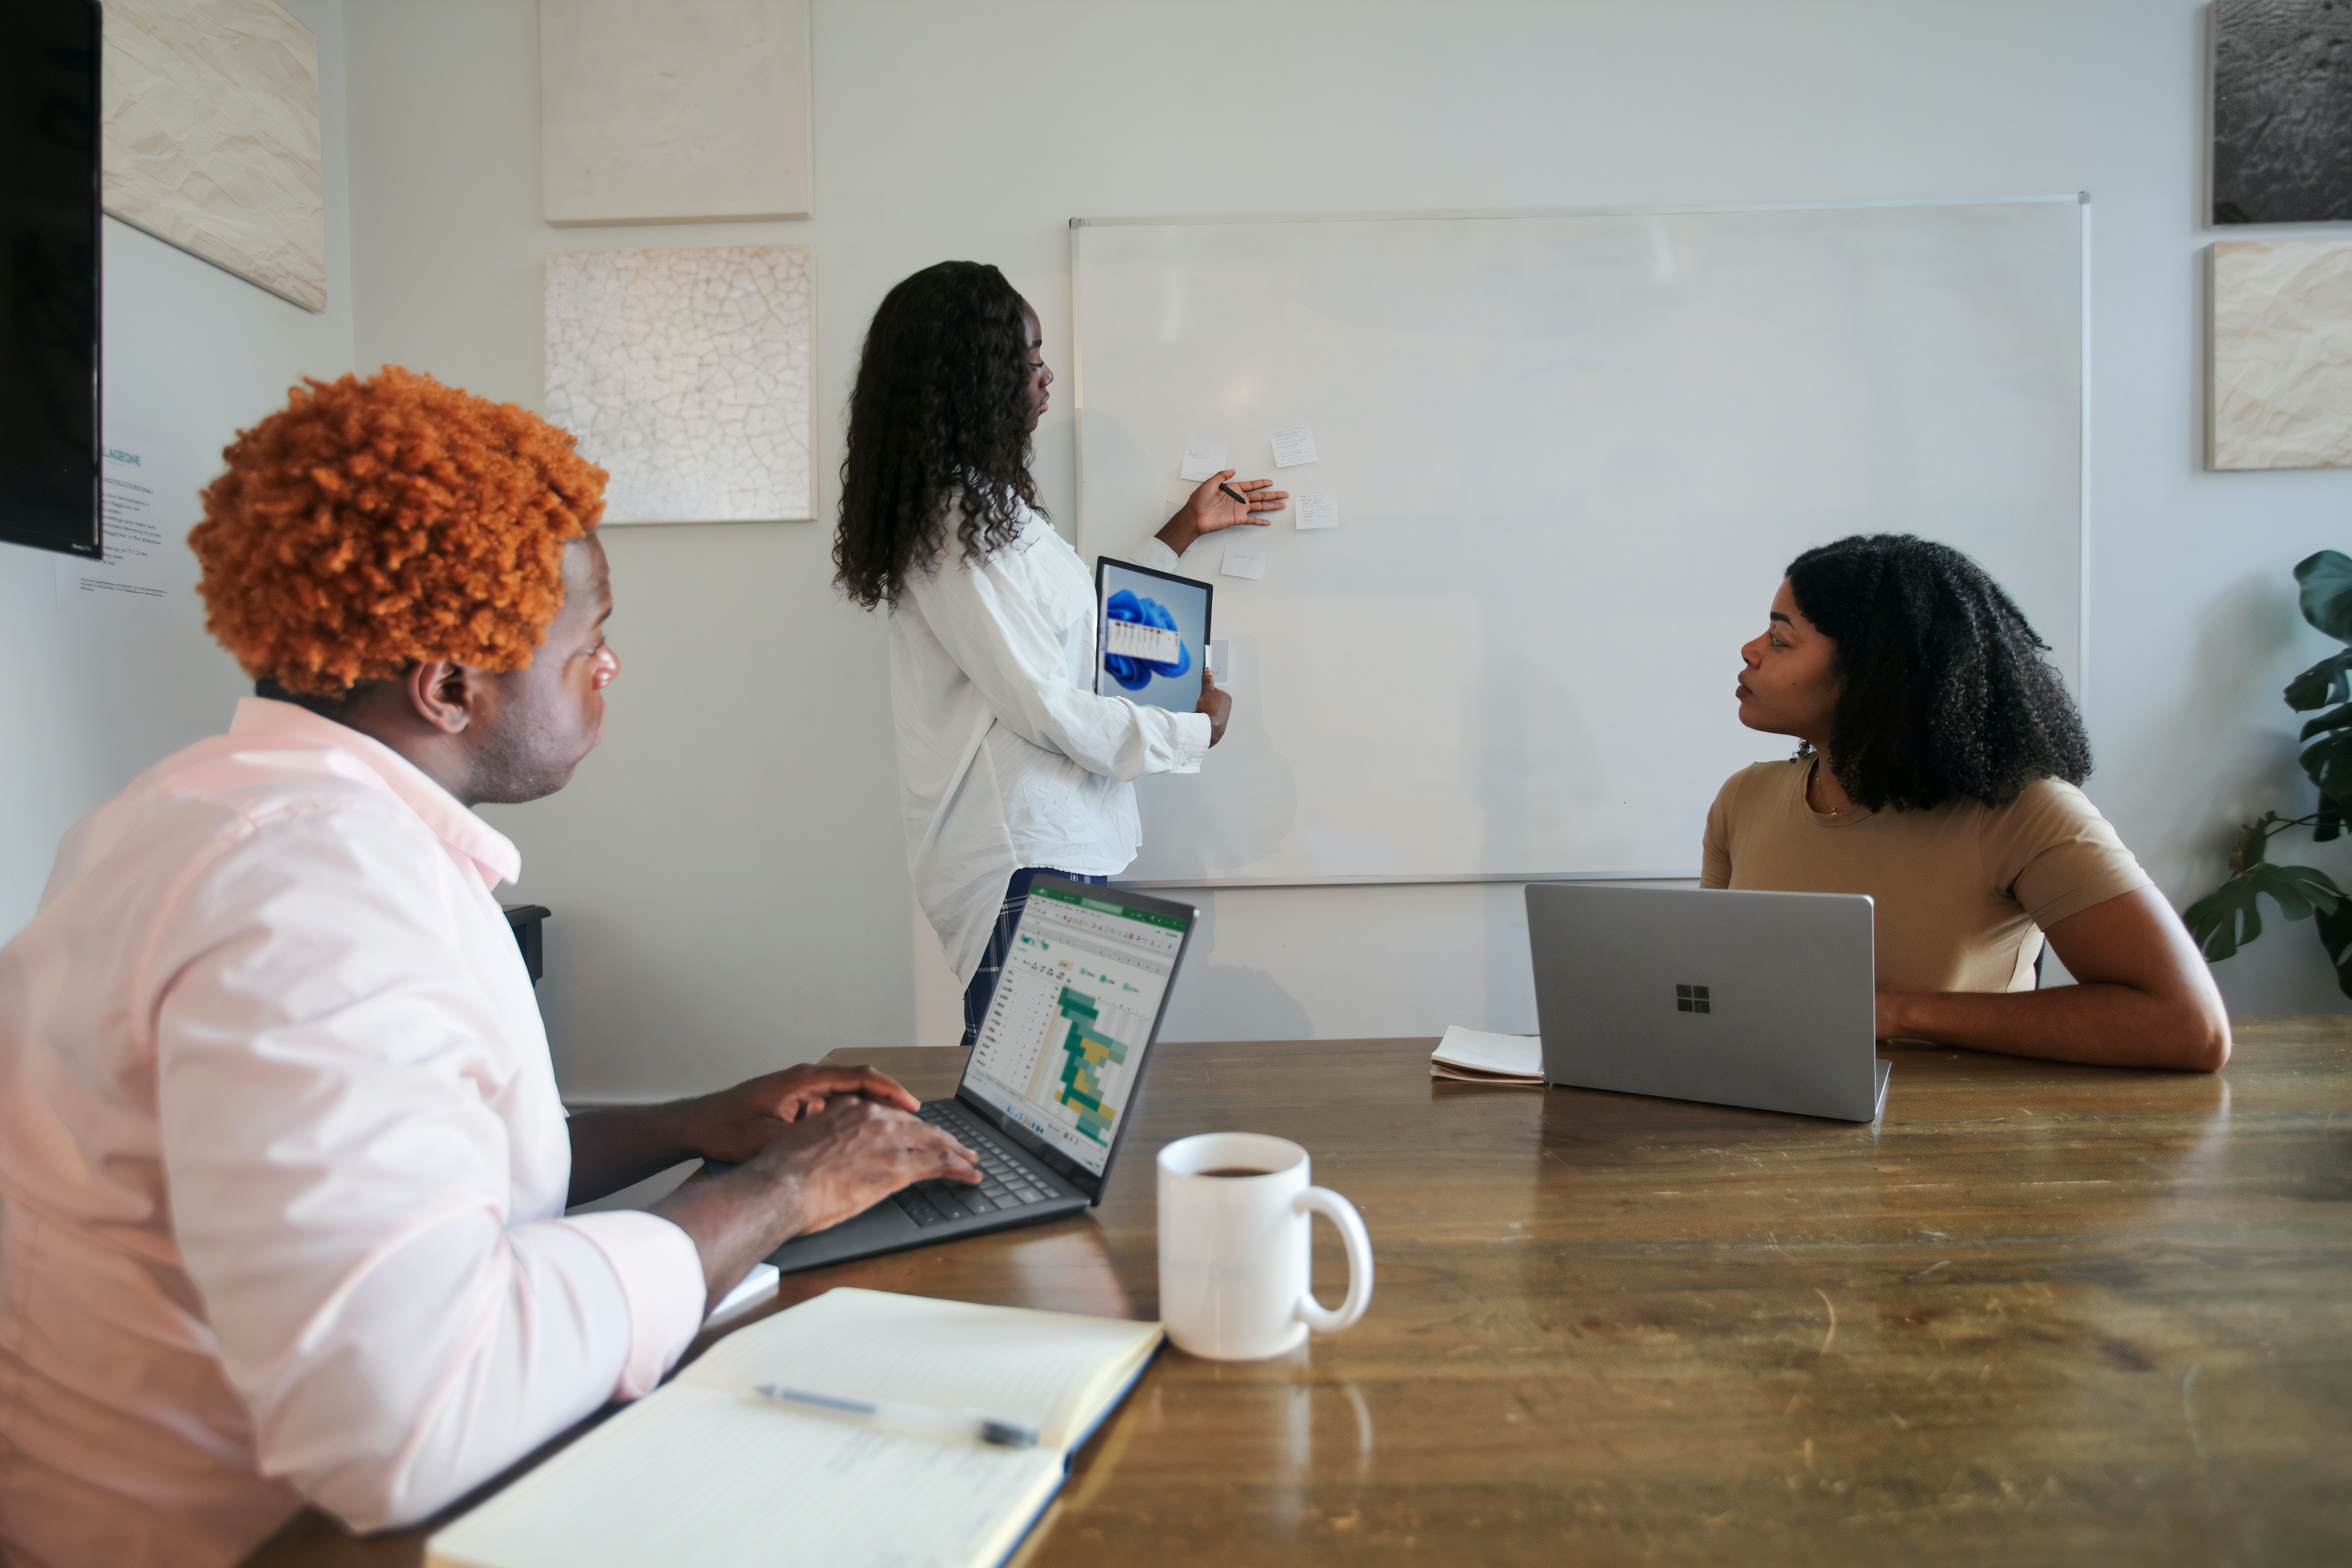 Group of meeting professionals sitting in conference room | Global agency, BCD Meetings & Events